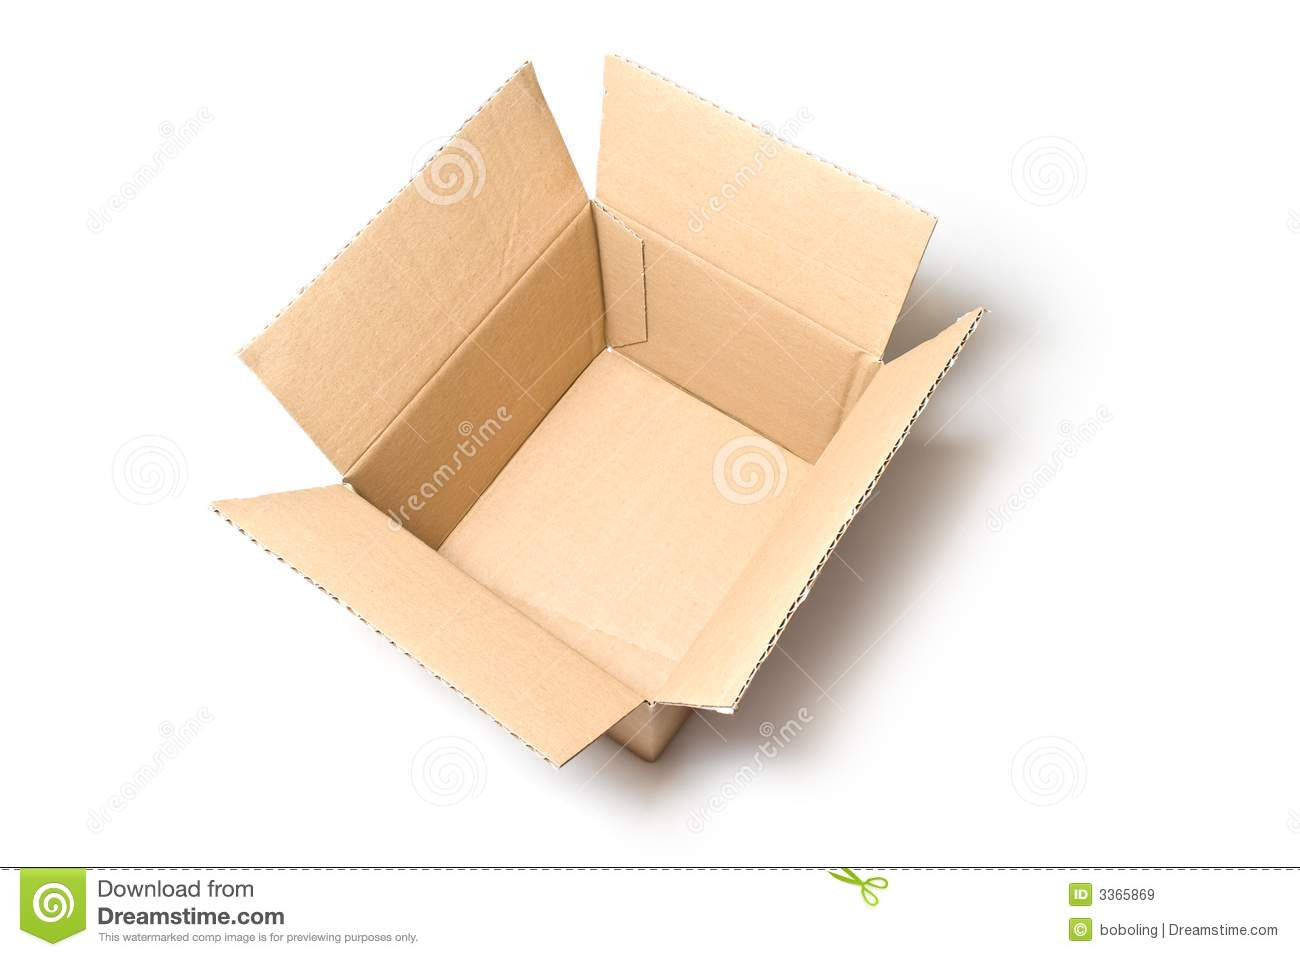 An opened box